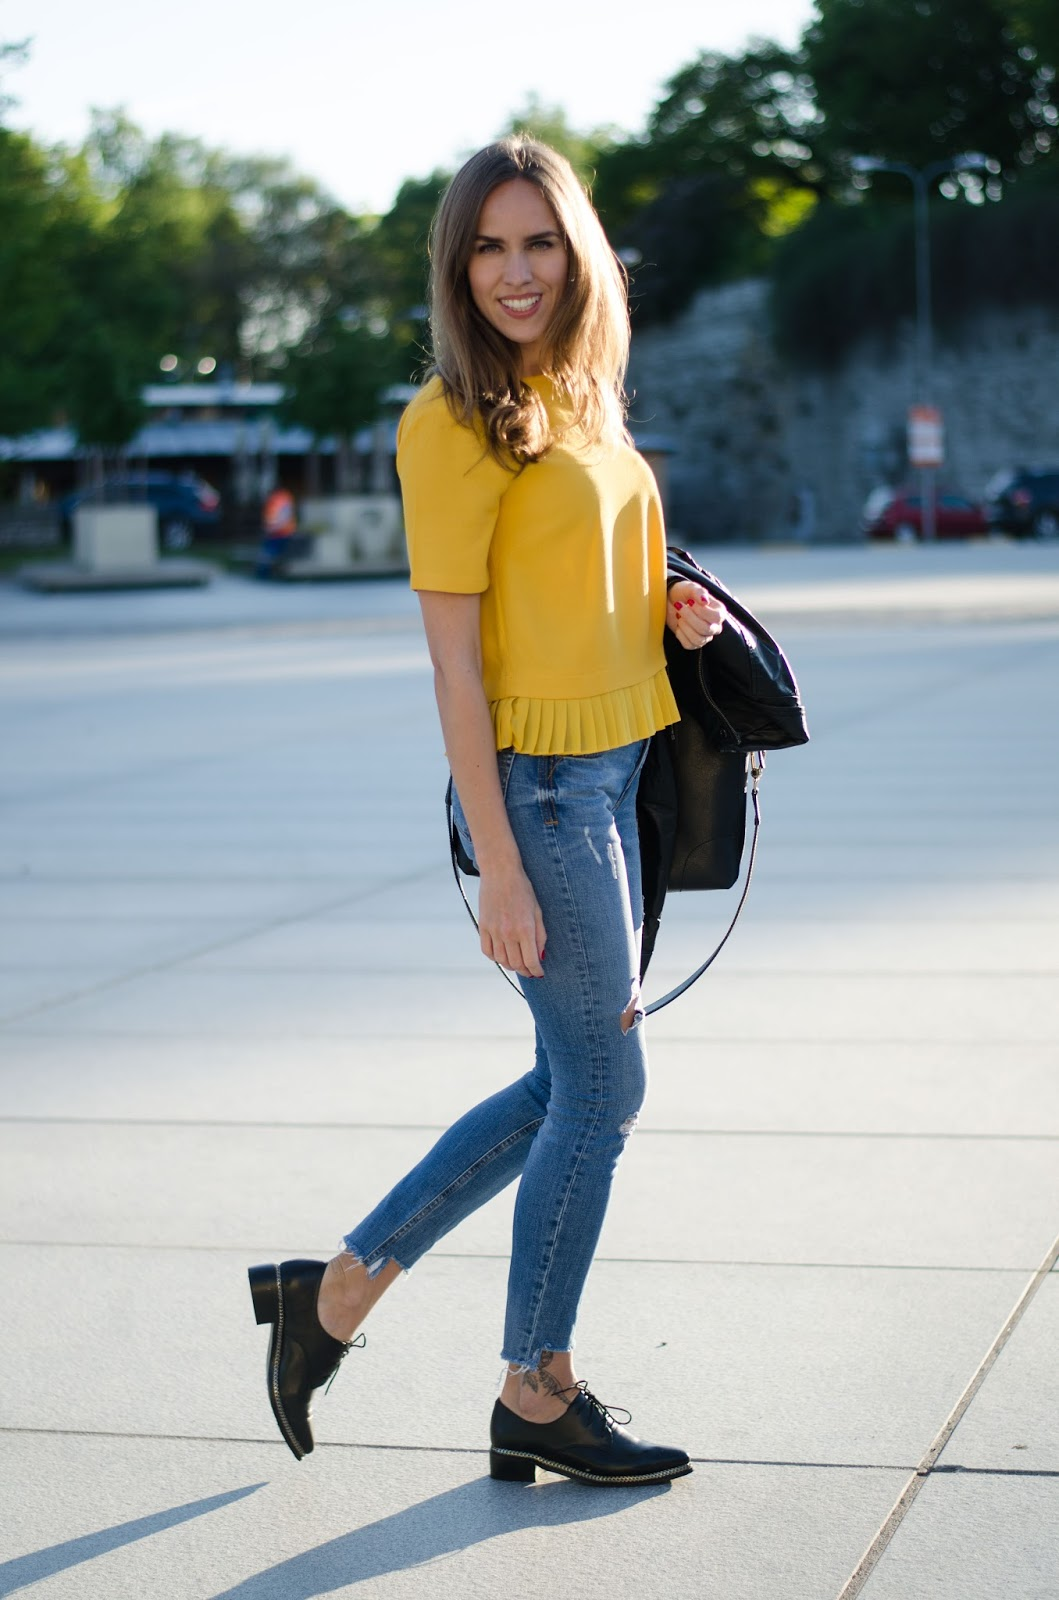 kristjaana mere zara yellow pleated top frayed jeans outfit